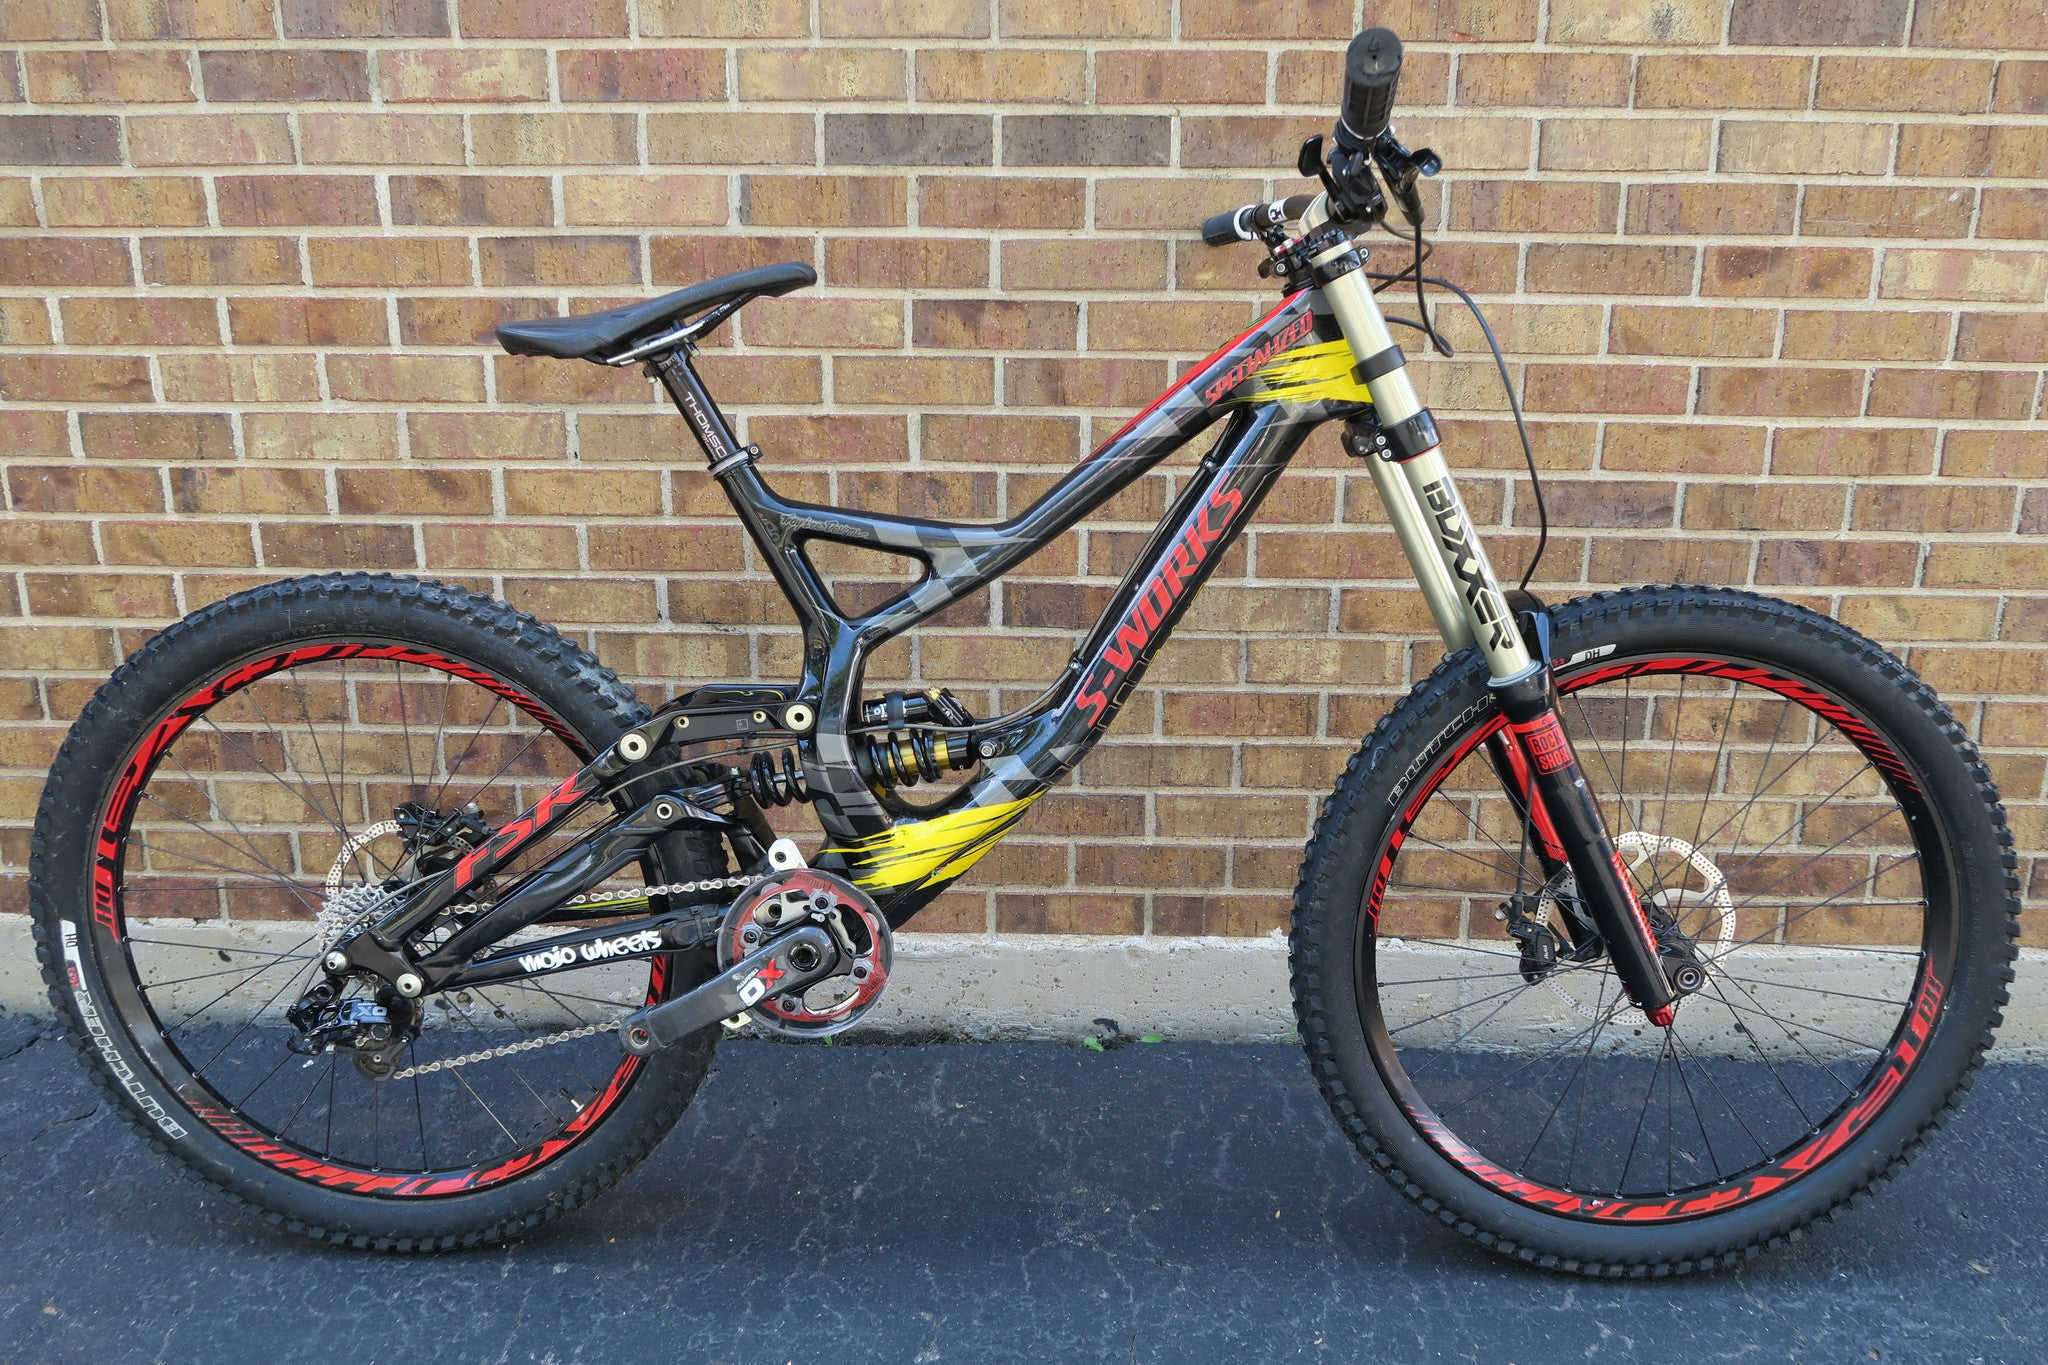 2013 S-WORKS DEMO 8 CARBON TROY LEE EDITION